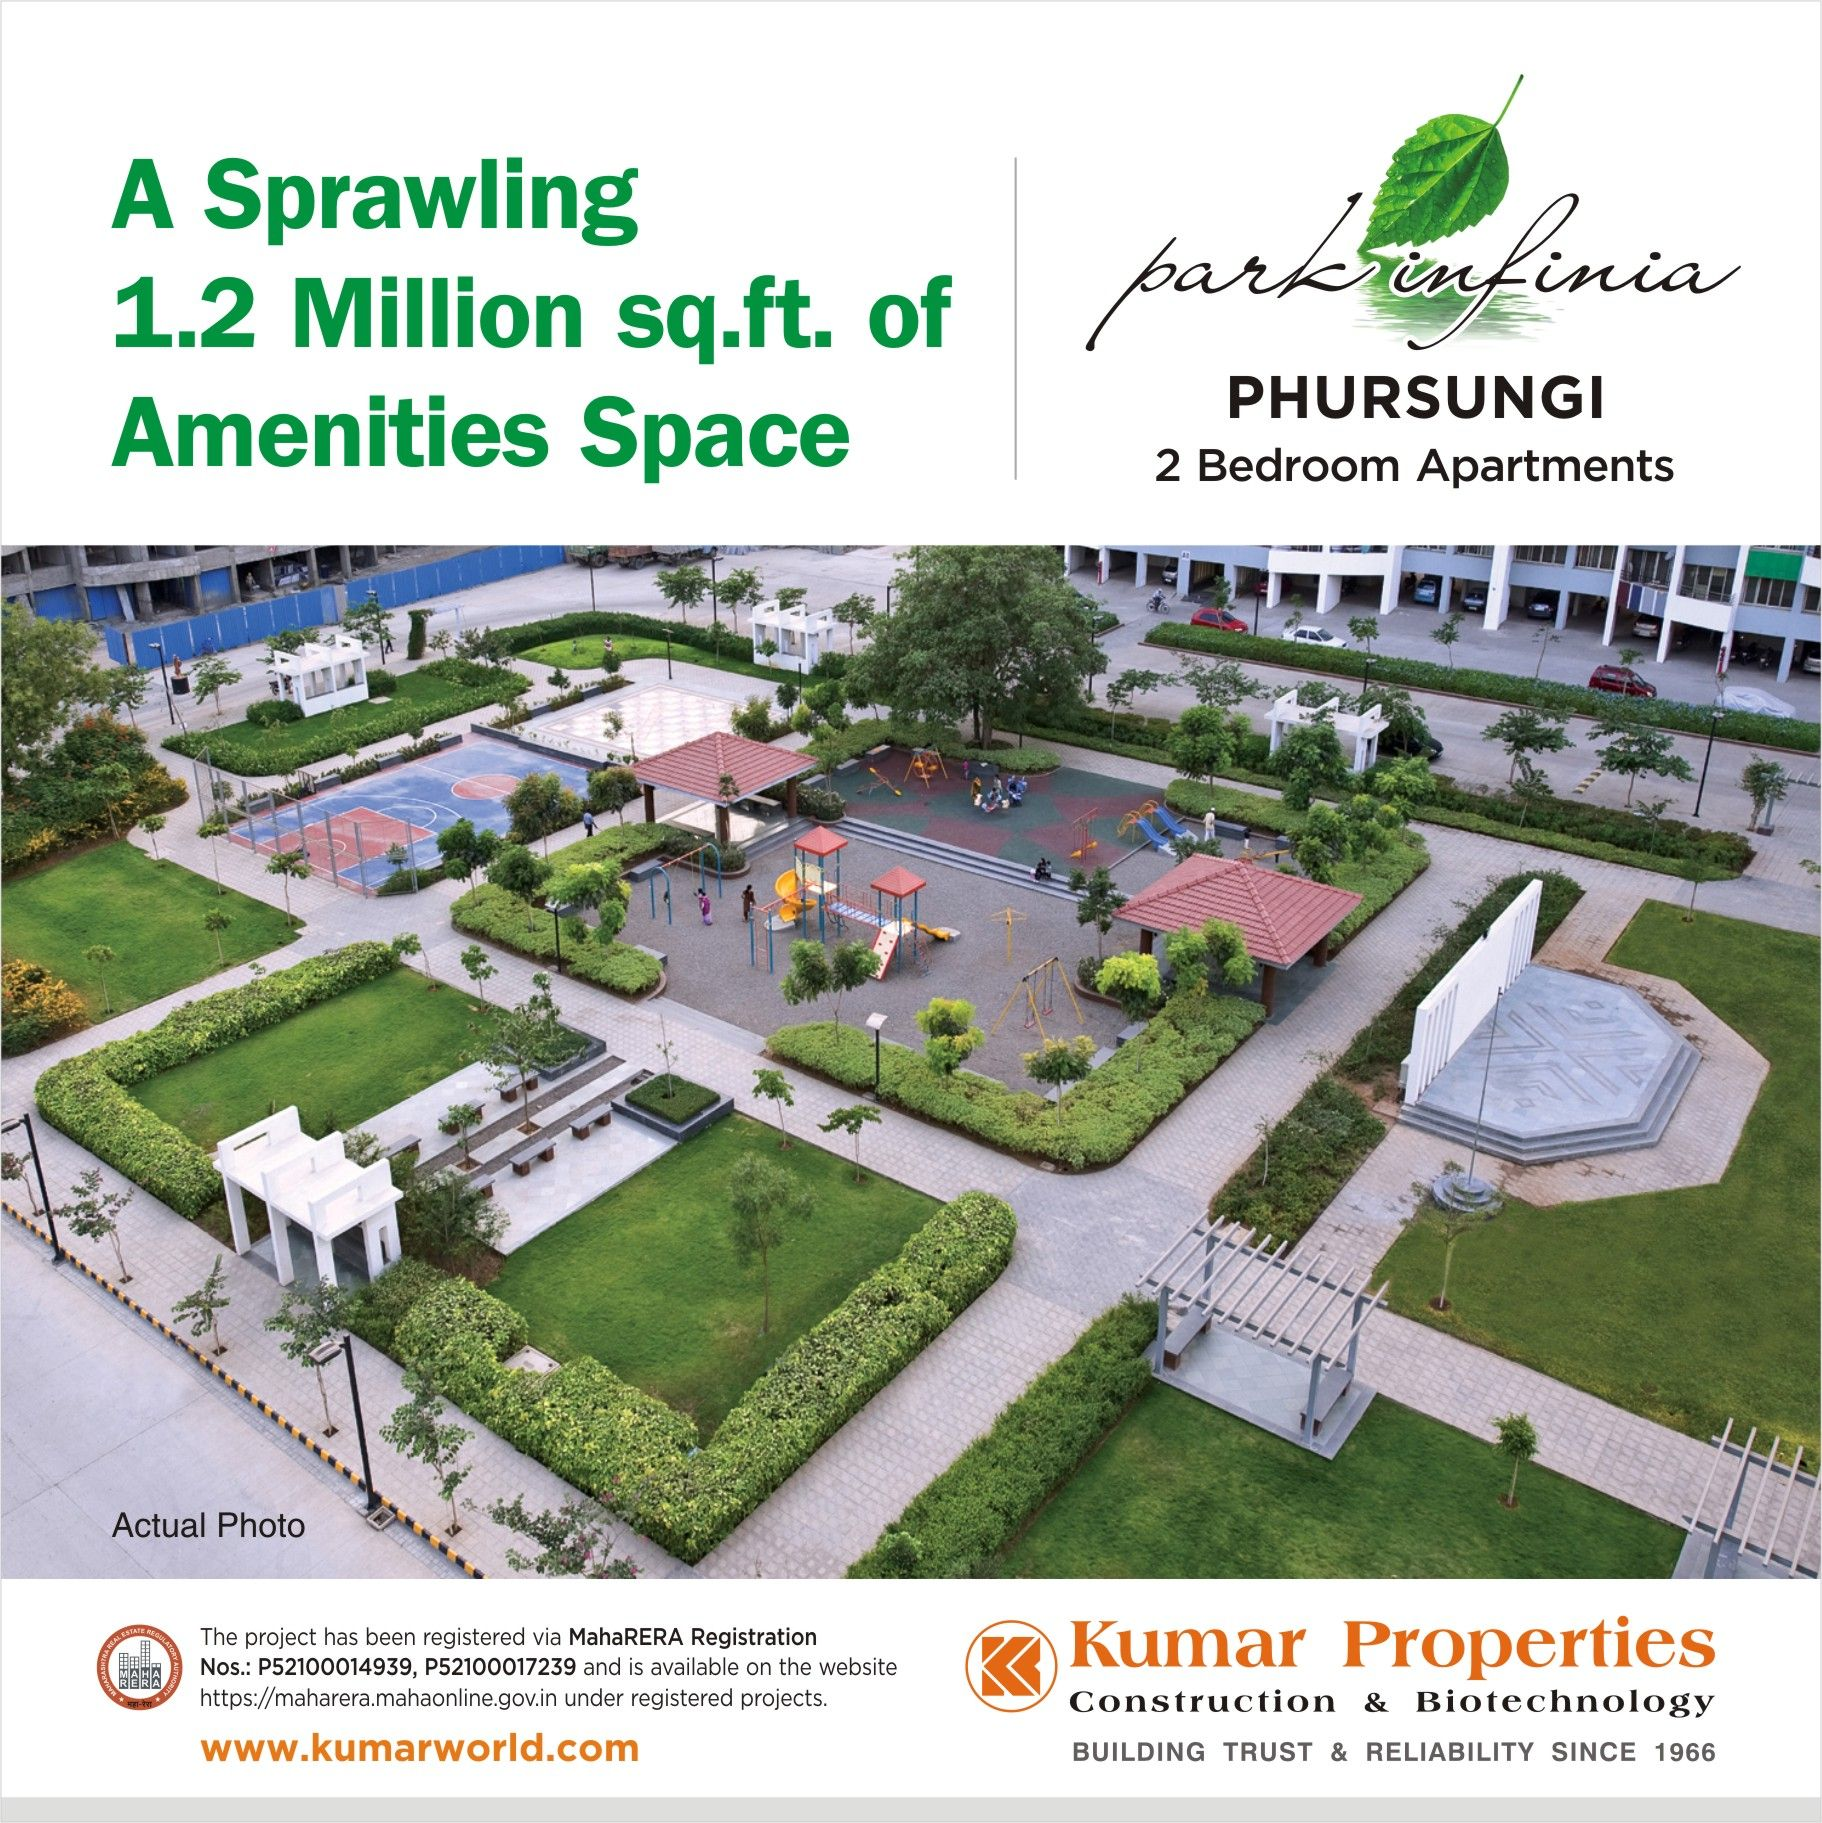 A Sprawling 1 2 Million sq ft  of #Amenities Space at Park Infinia